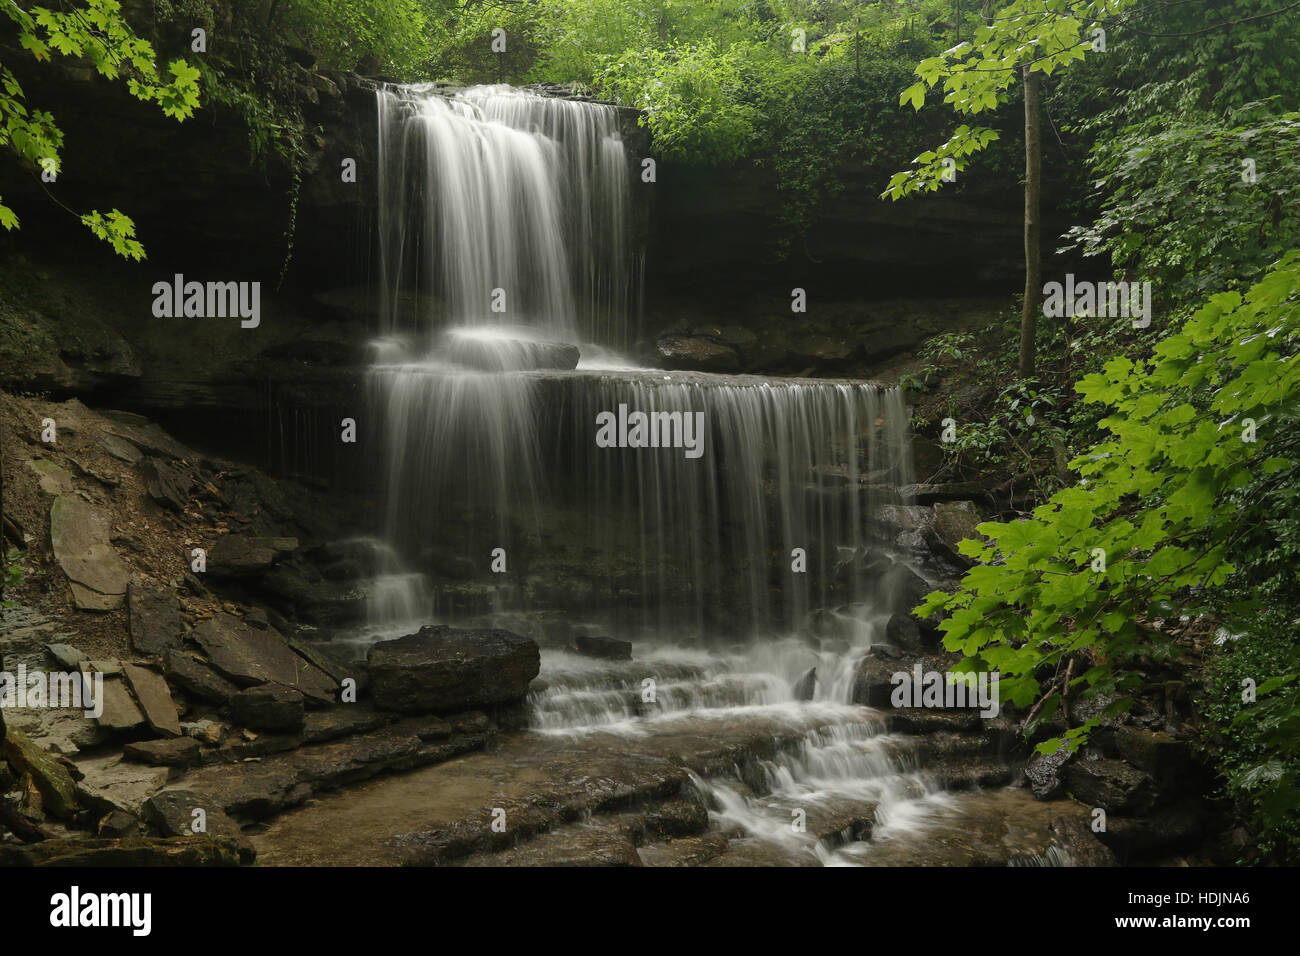 Summer  Waterfall. West Milton Cascades, West Milton, Dayton, Ohio, USA. Stock Photo